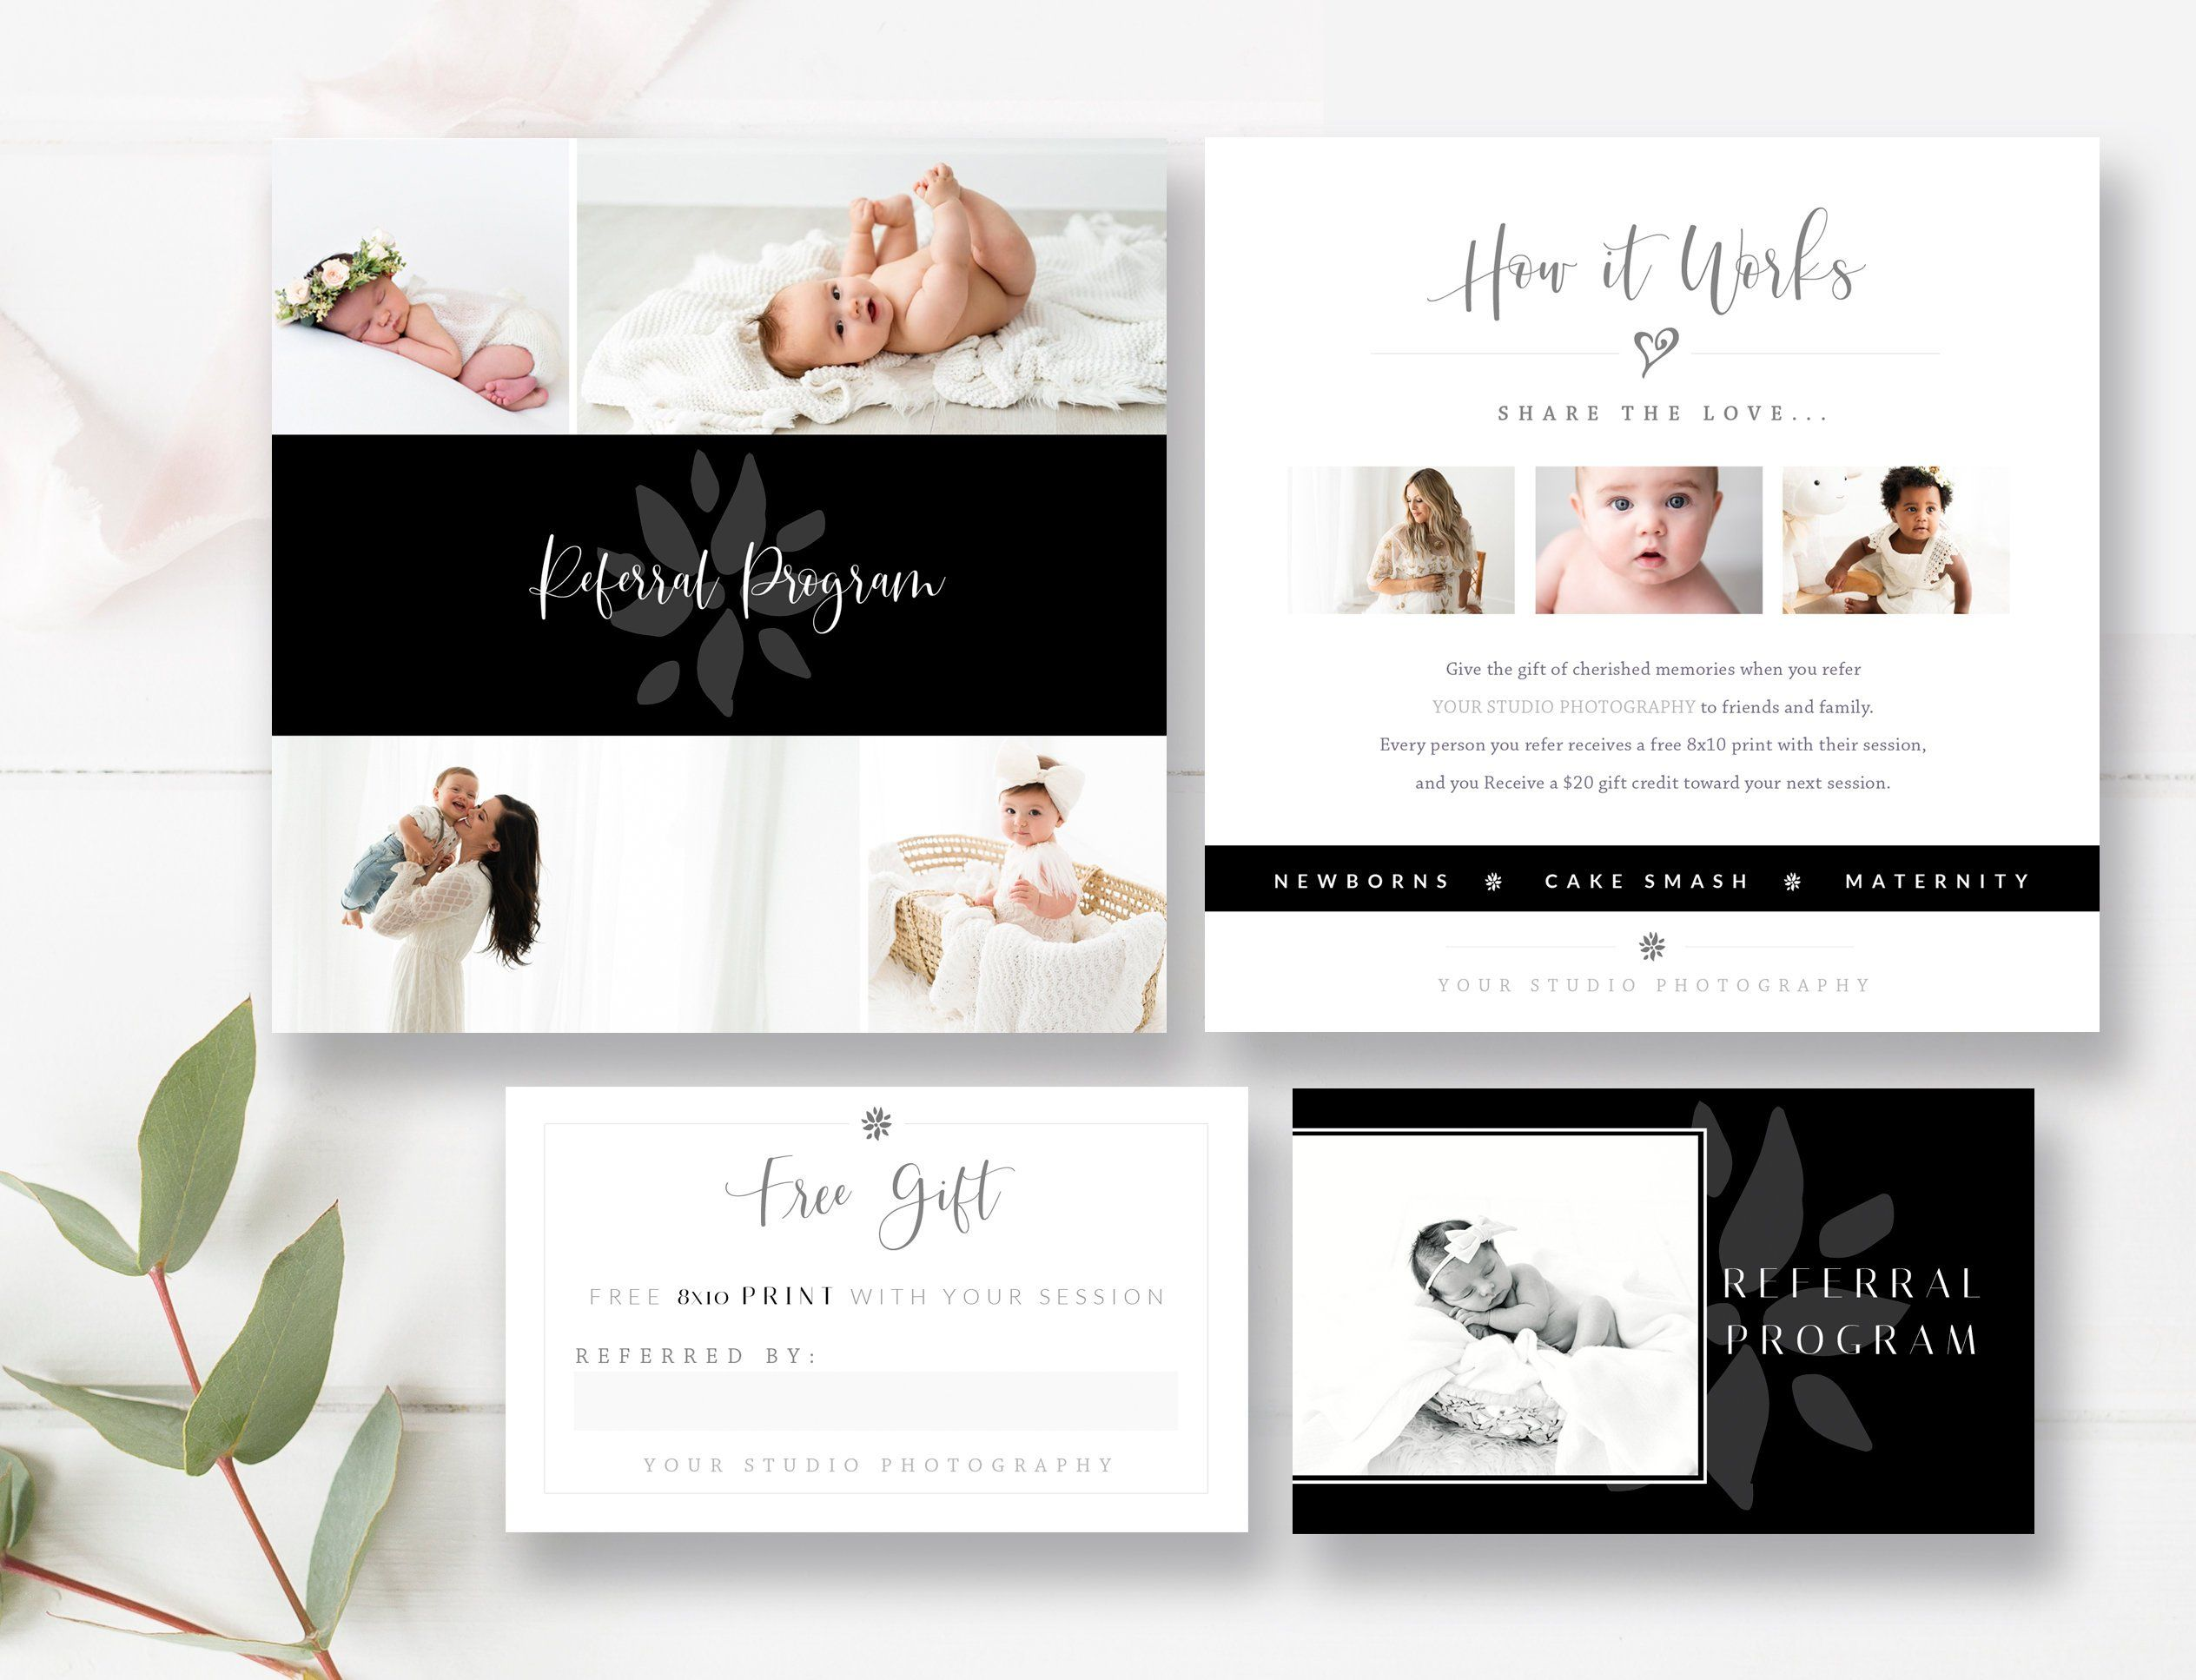 Newborn Photography Referral Card Matching Business Card Size Tell A Friend Referral Program Photoshop Templates Instant Download Card Template Card Templates Card Templates Free